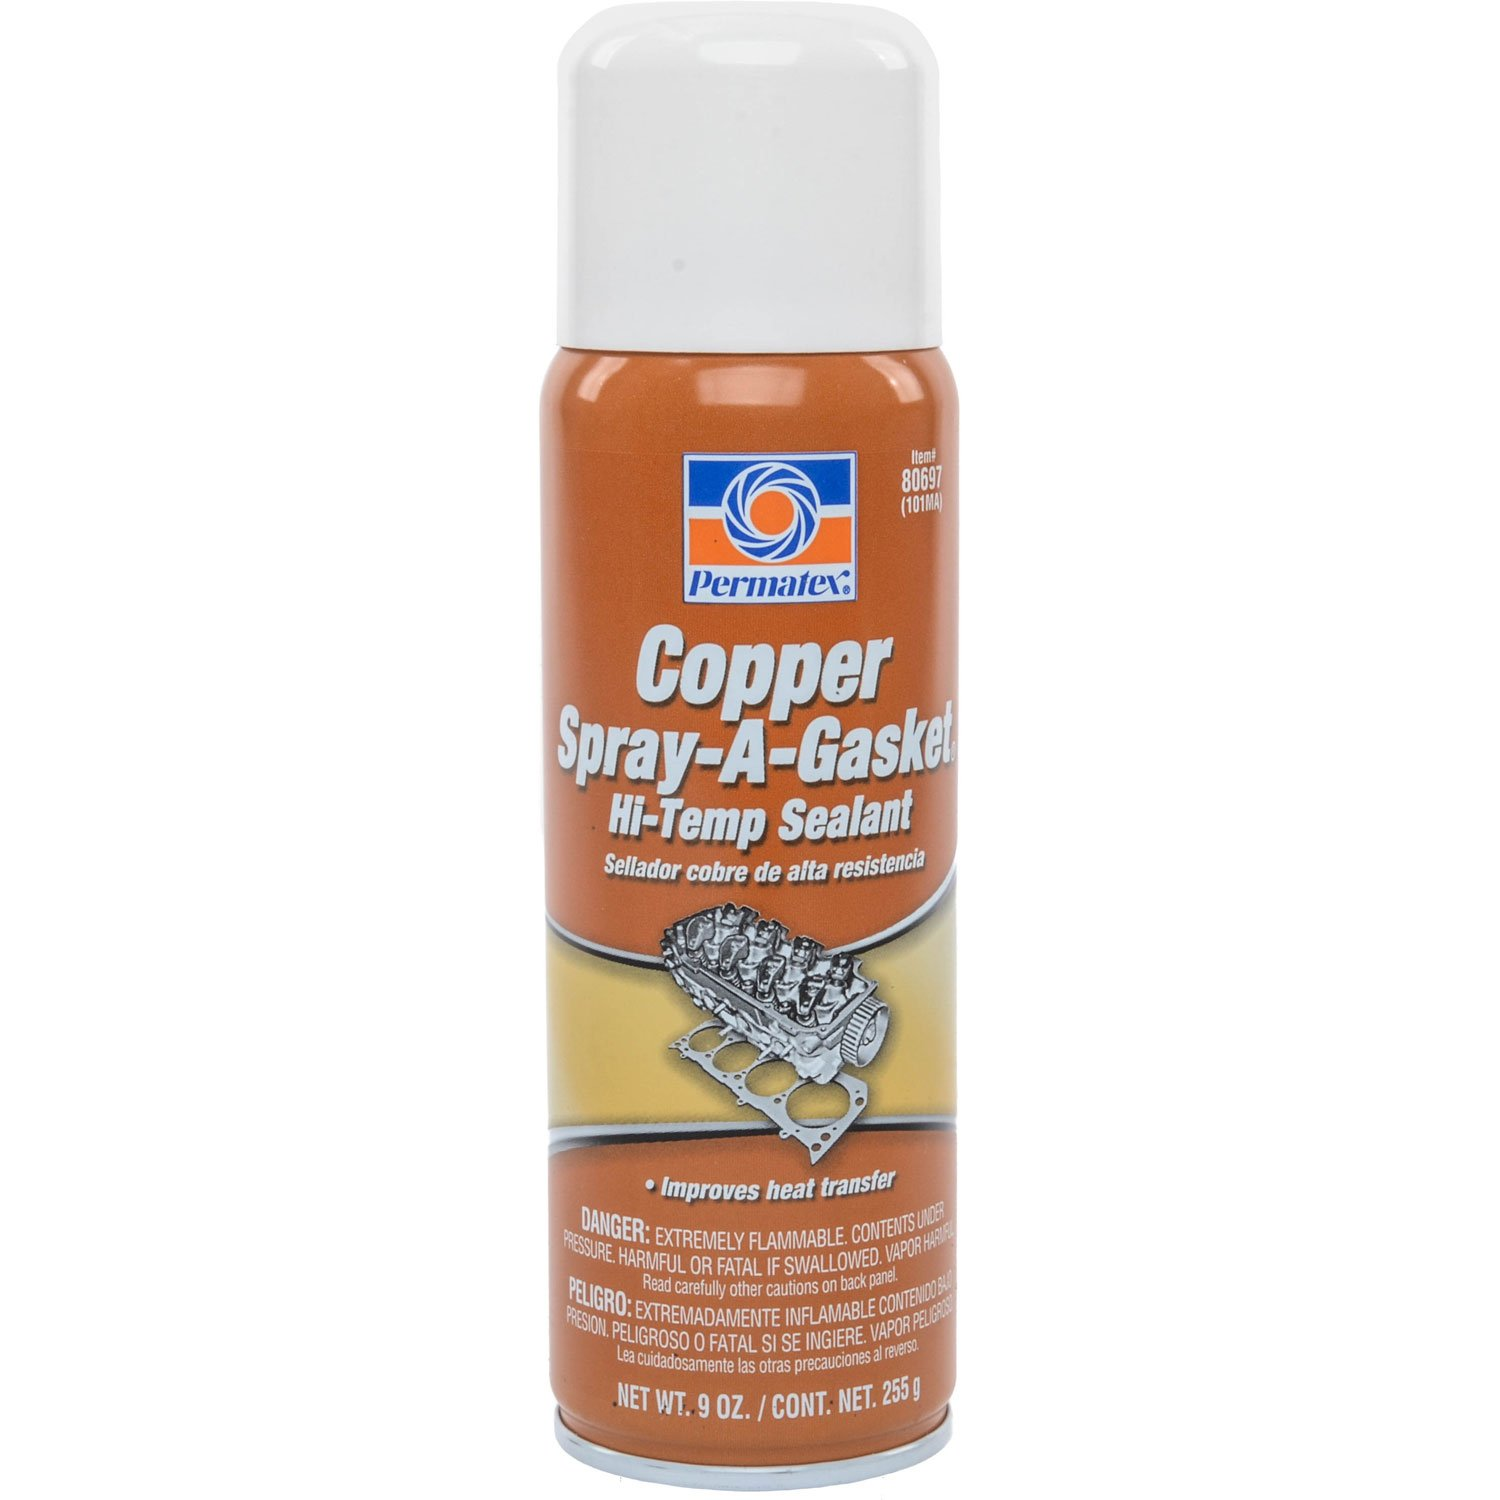 Permatex 80697 - Permatex Copper Spray-A-Gasket Sealant